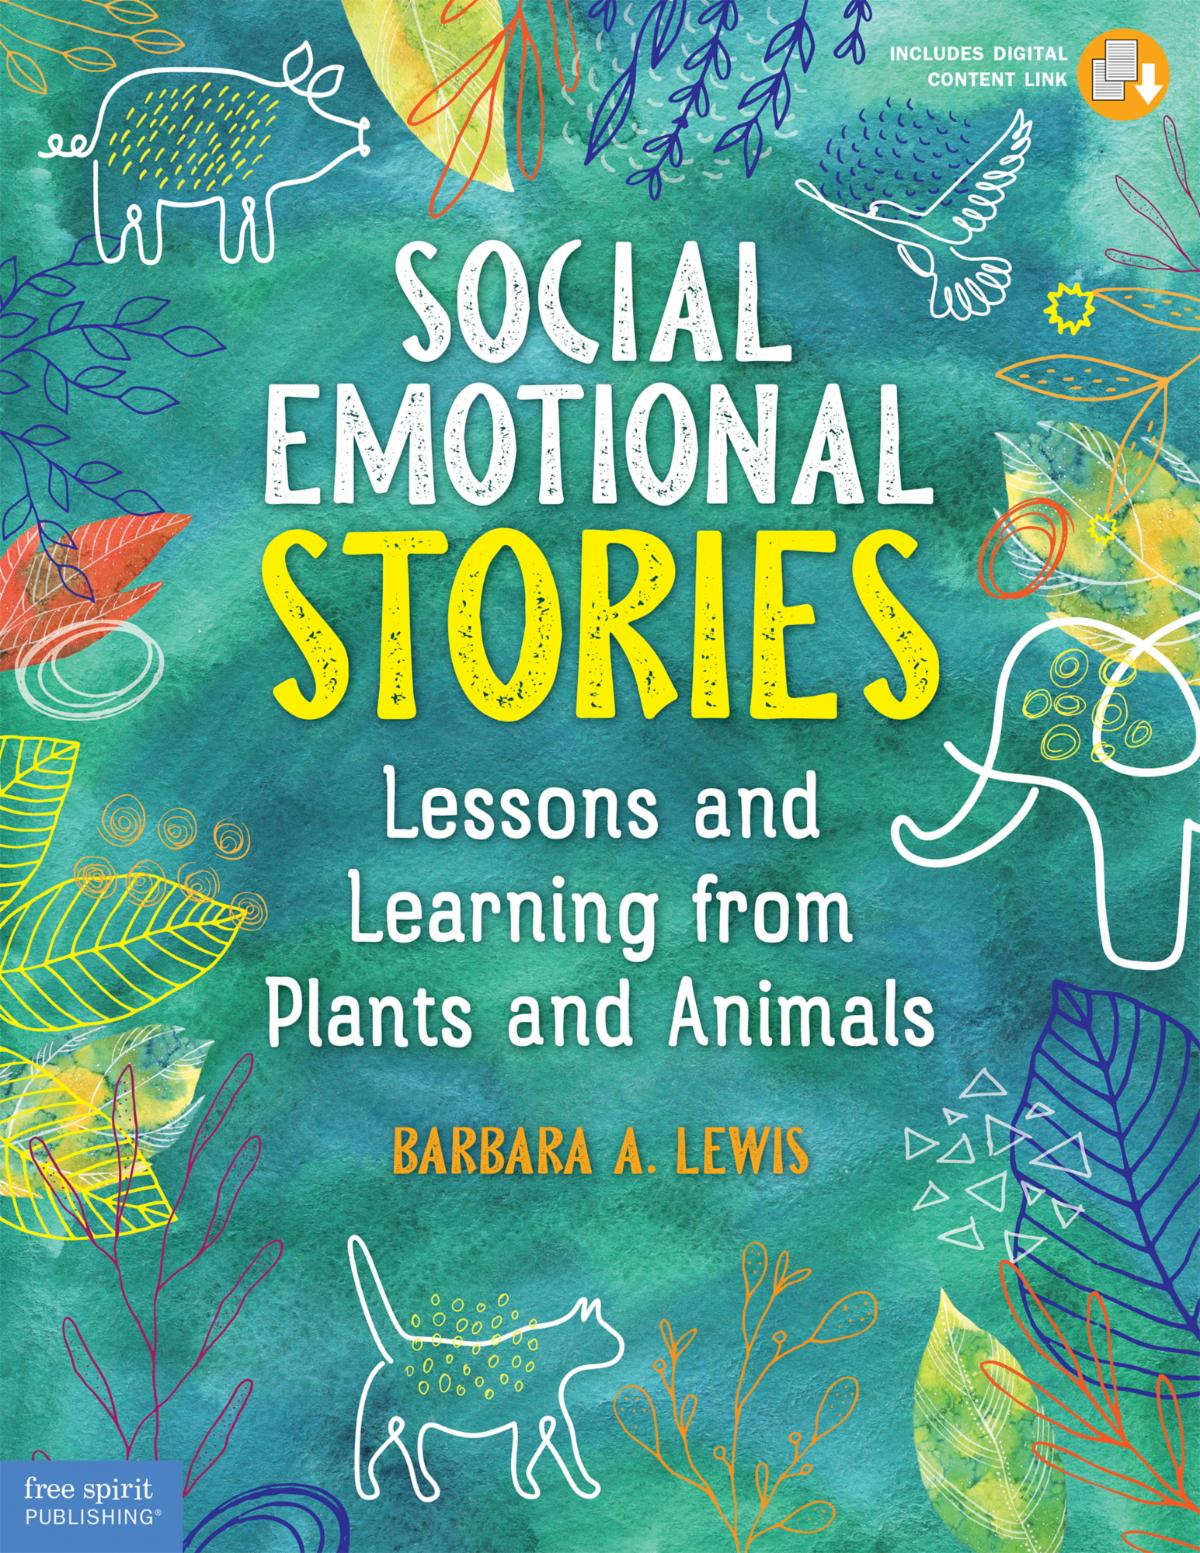 Social Emotional Stories